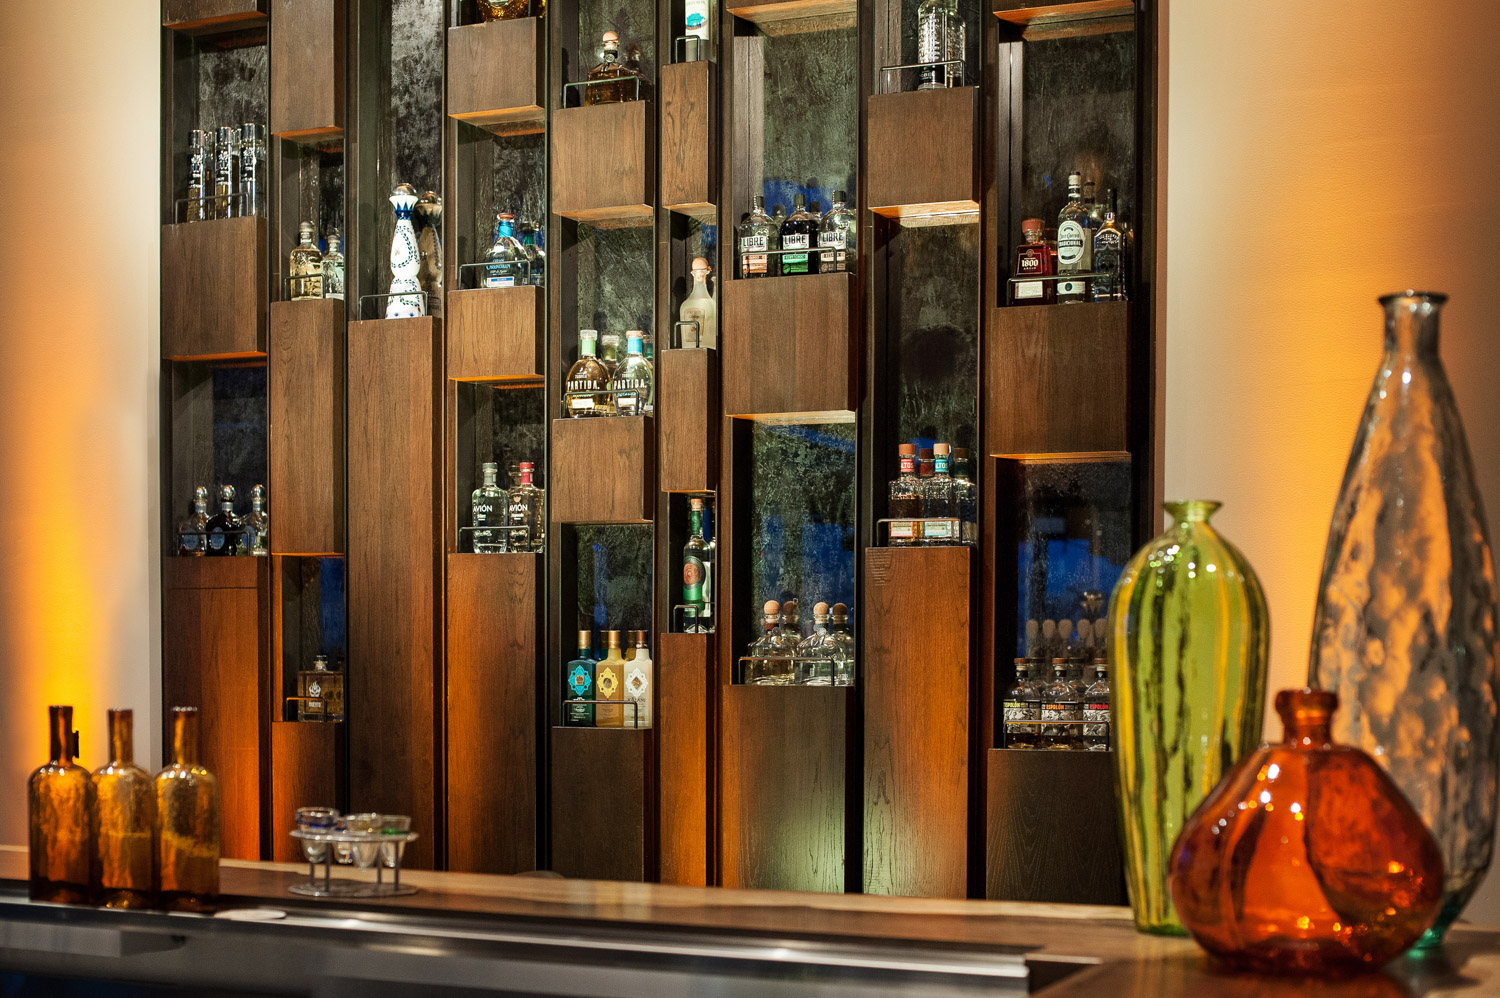 Tequilla bar detail, bar and restaurant photographer, architectural photographer, san diego photographer